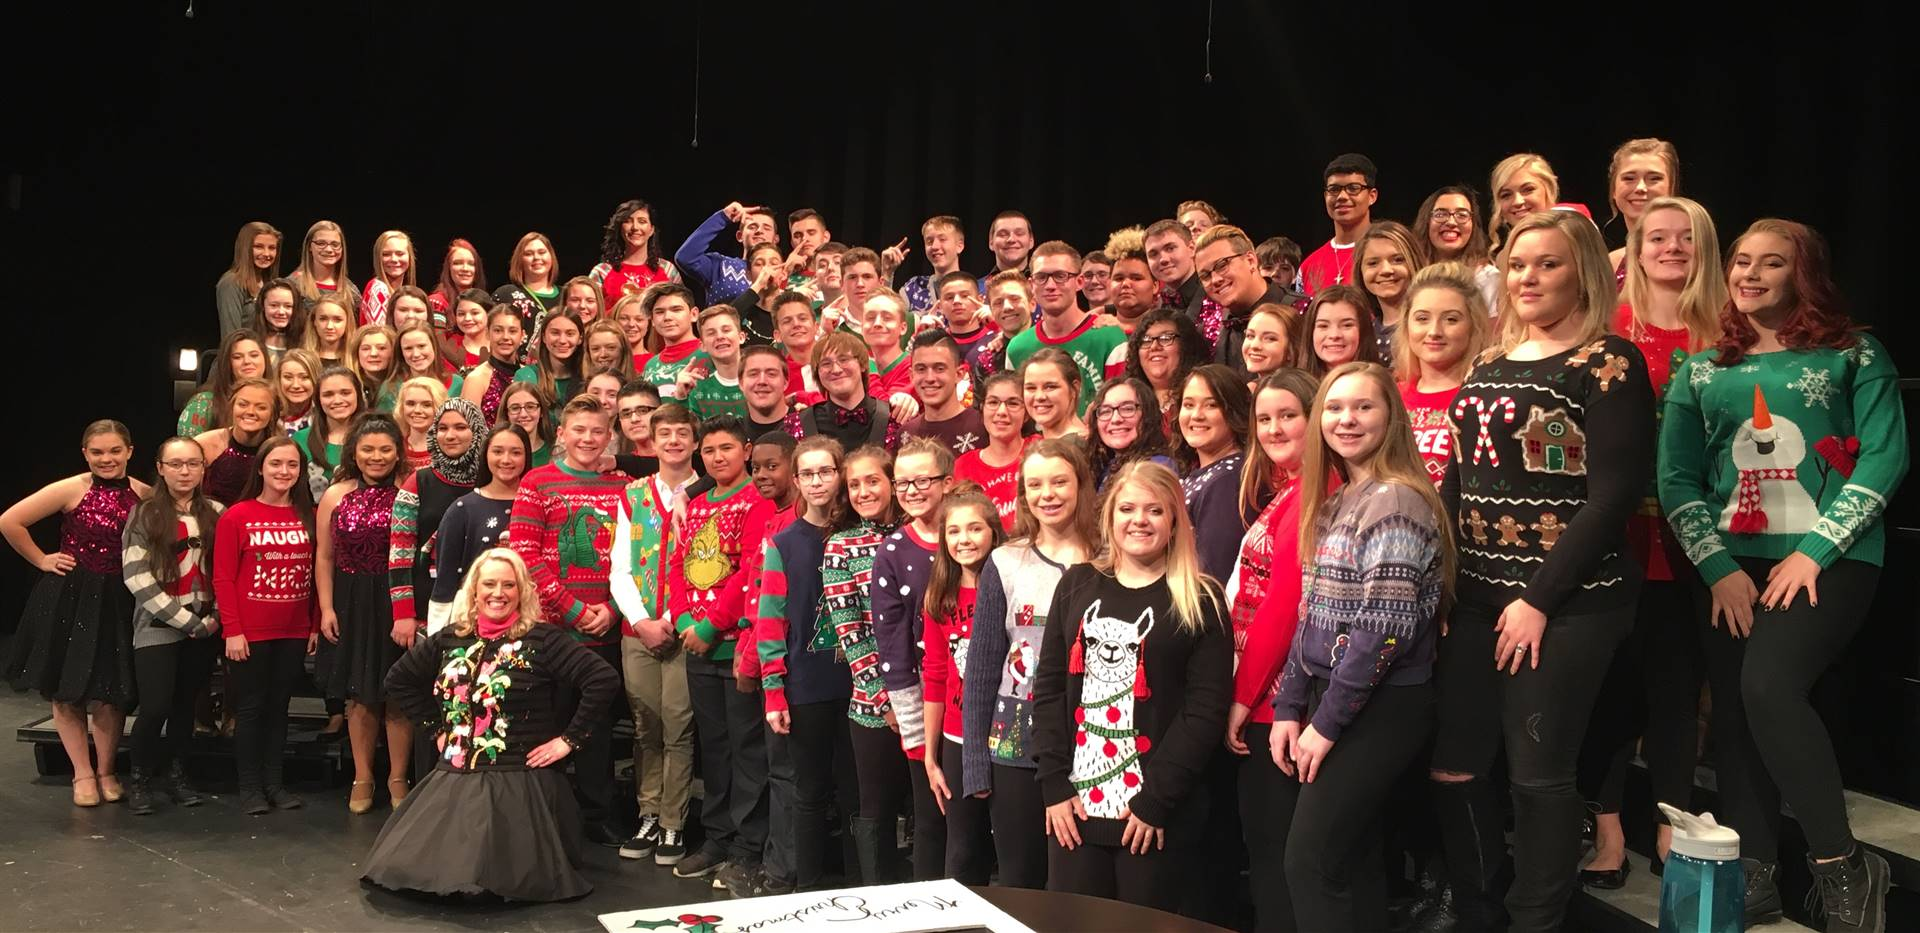 Ugly Sweater Christmas Concert Picture